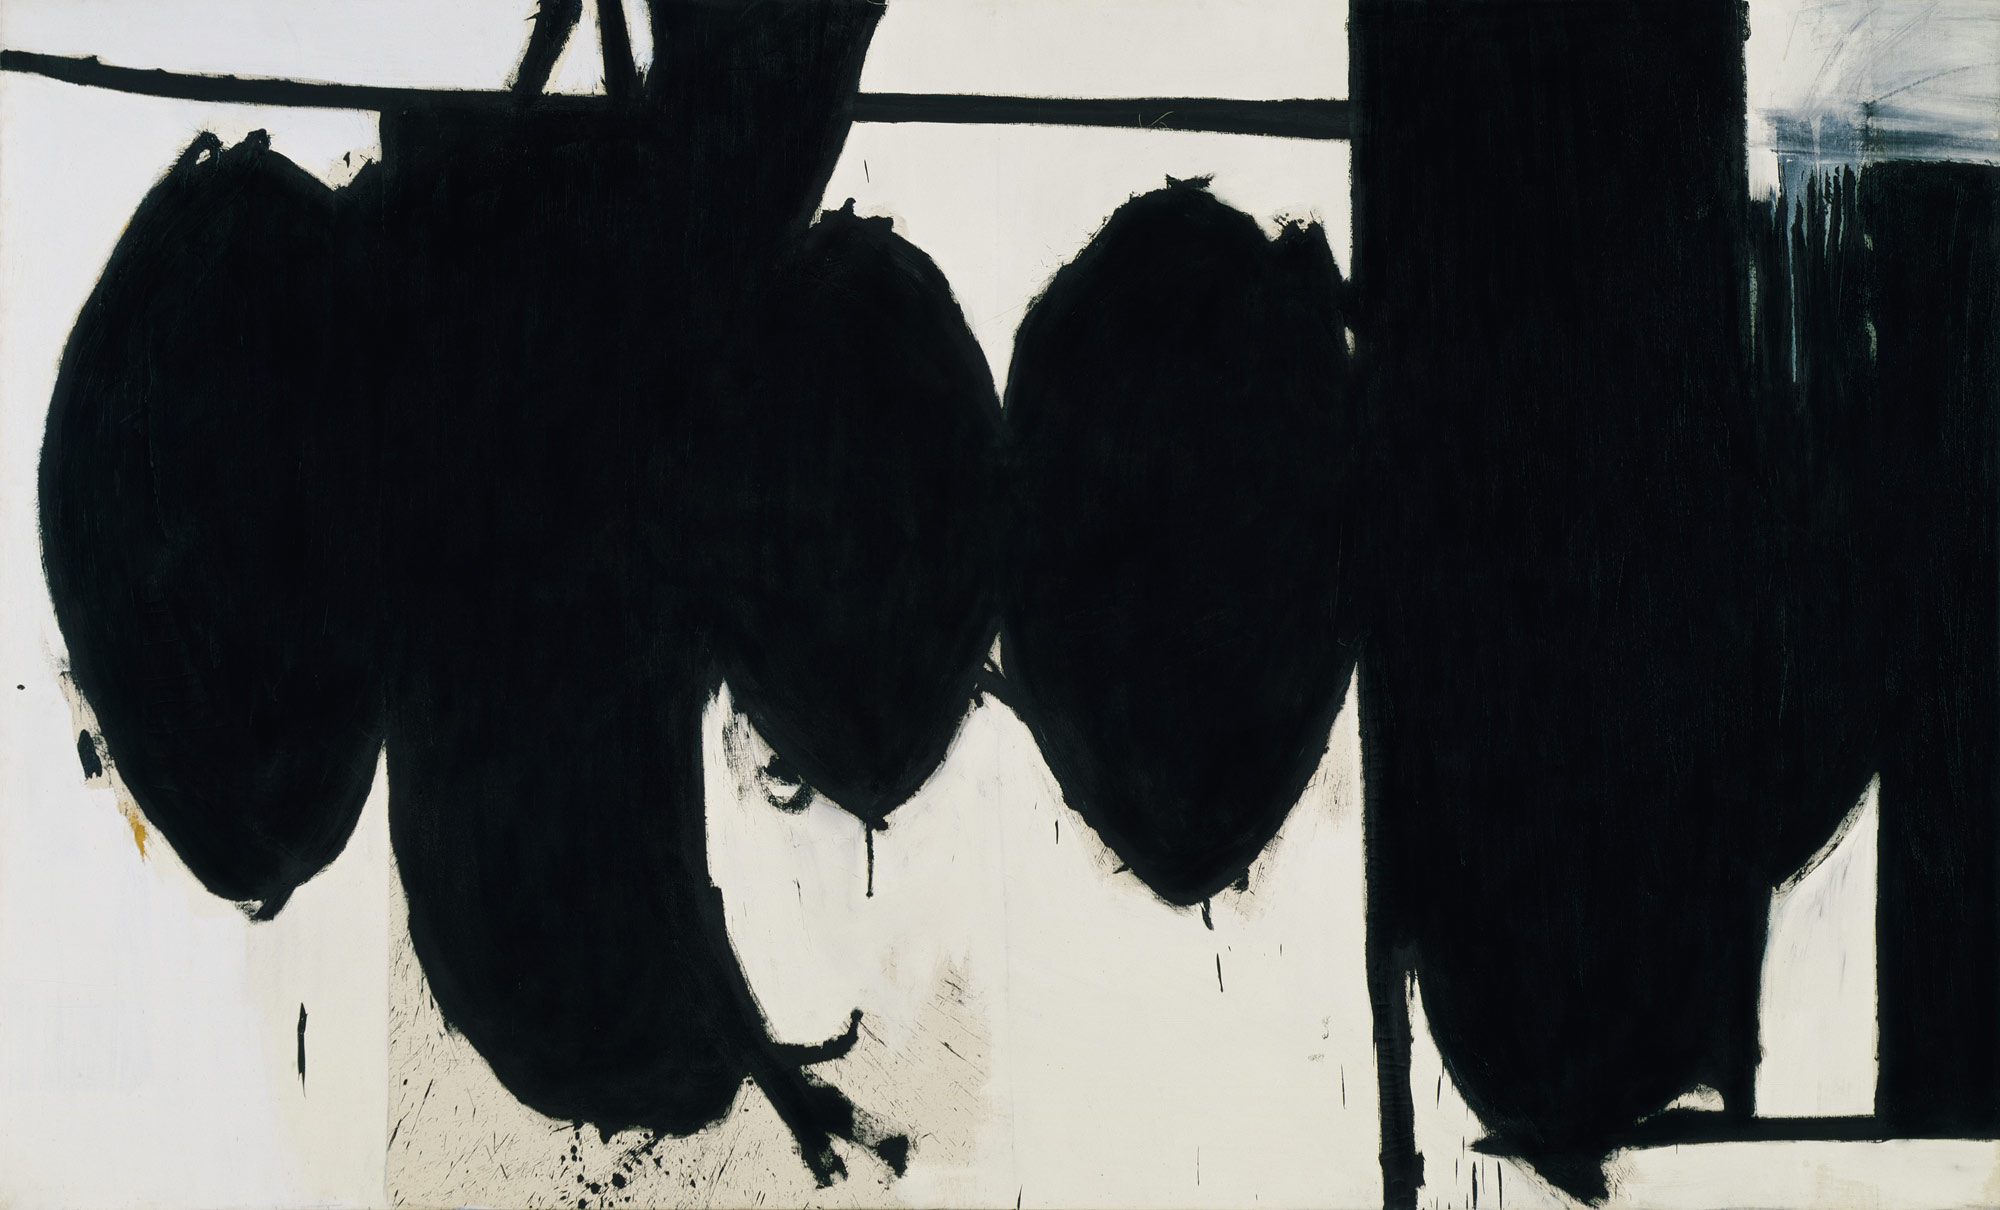 While he returned again and again to these familiar black ovals and verticals, painter Robert Motherwell did not offer literal explanation about why they compelled him so much, appearing in dozens of his works.  (Courtesy  www.metmuseum.org )